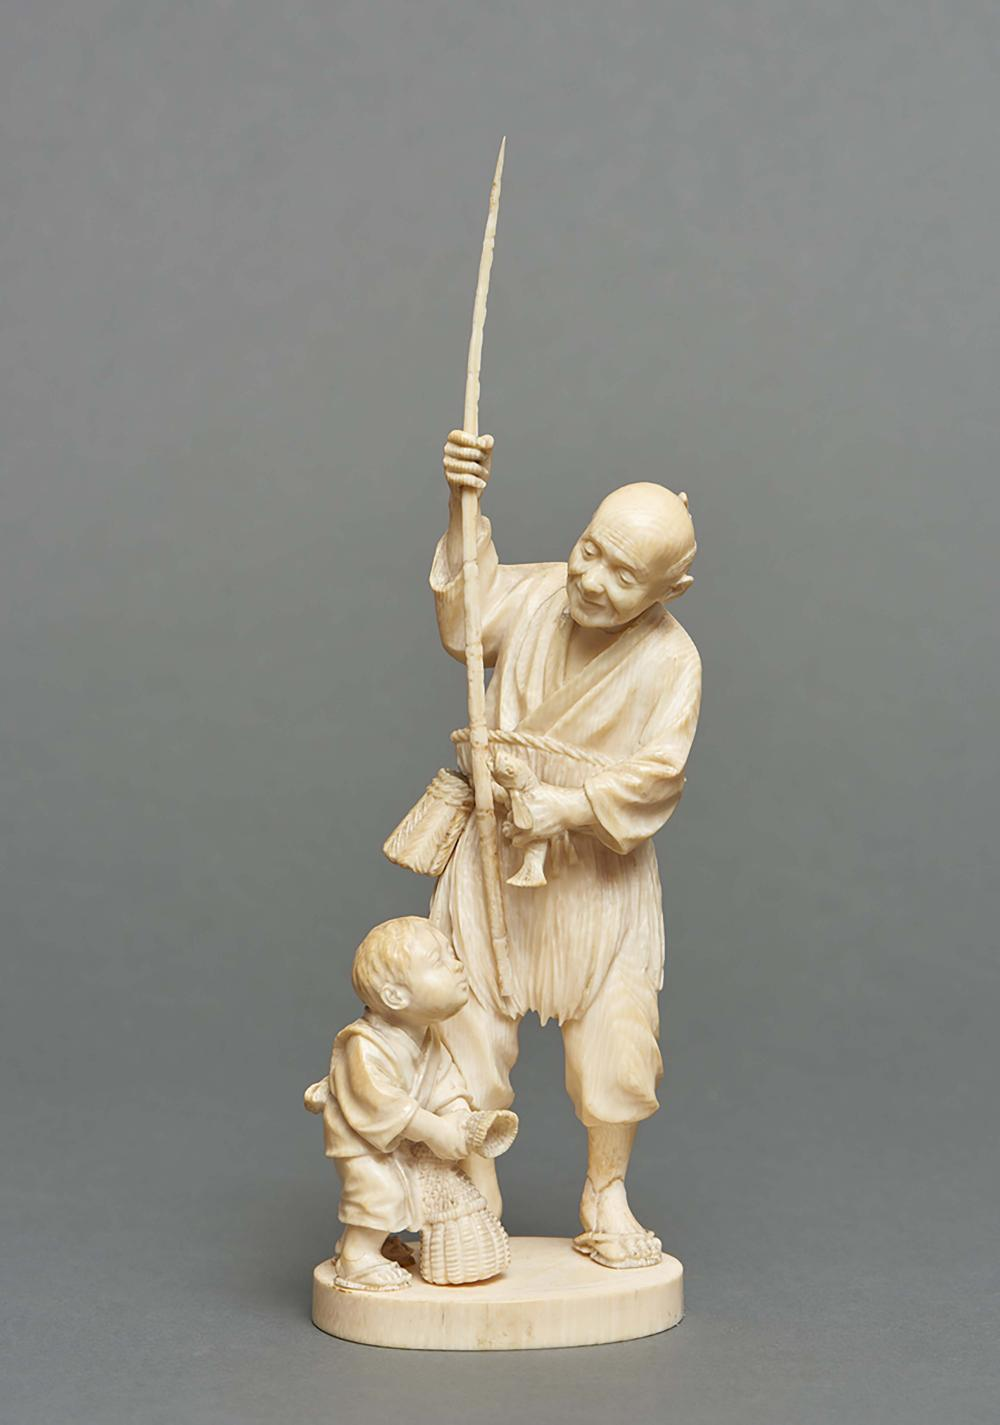 Ivory okimono of a fisherman holding a rod and a fish in his hands with his